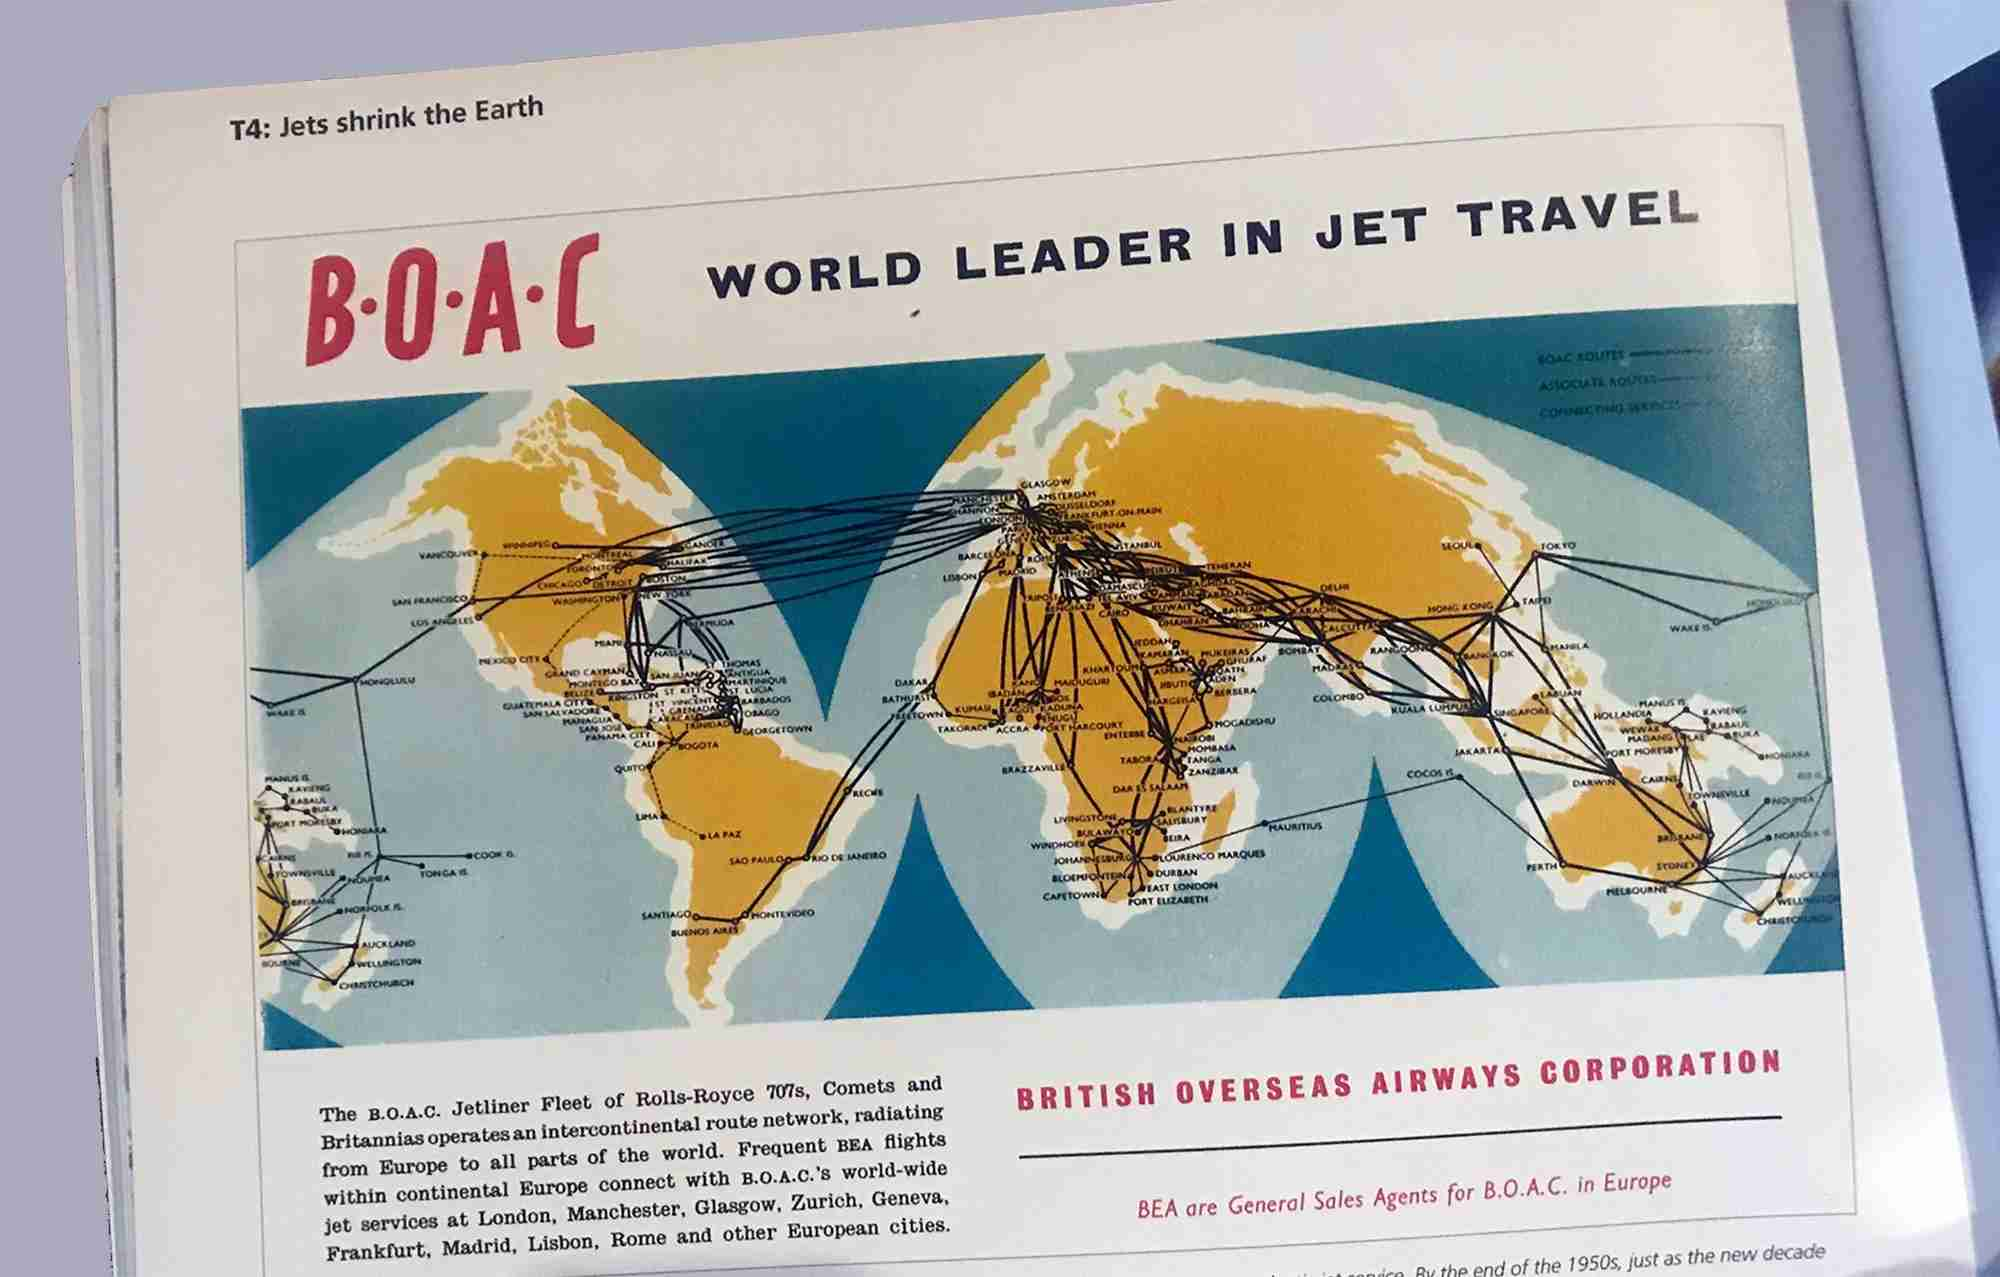 Airline Maps Excerpt, showing a BOAC map. Image by author.